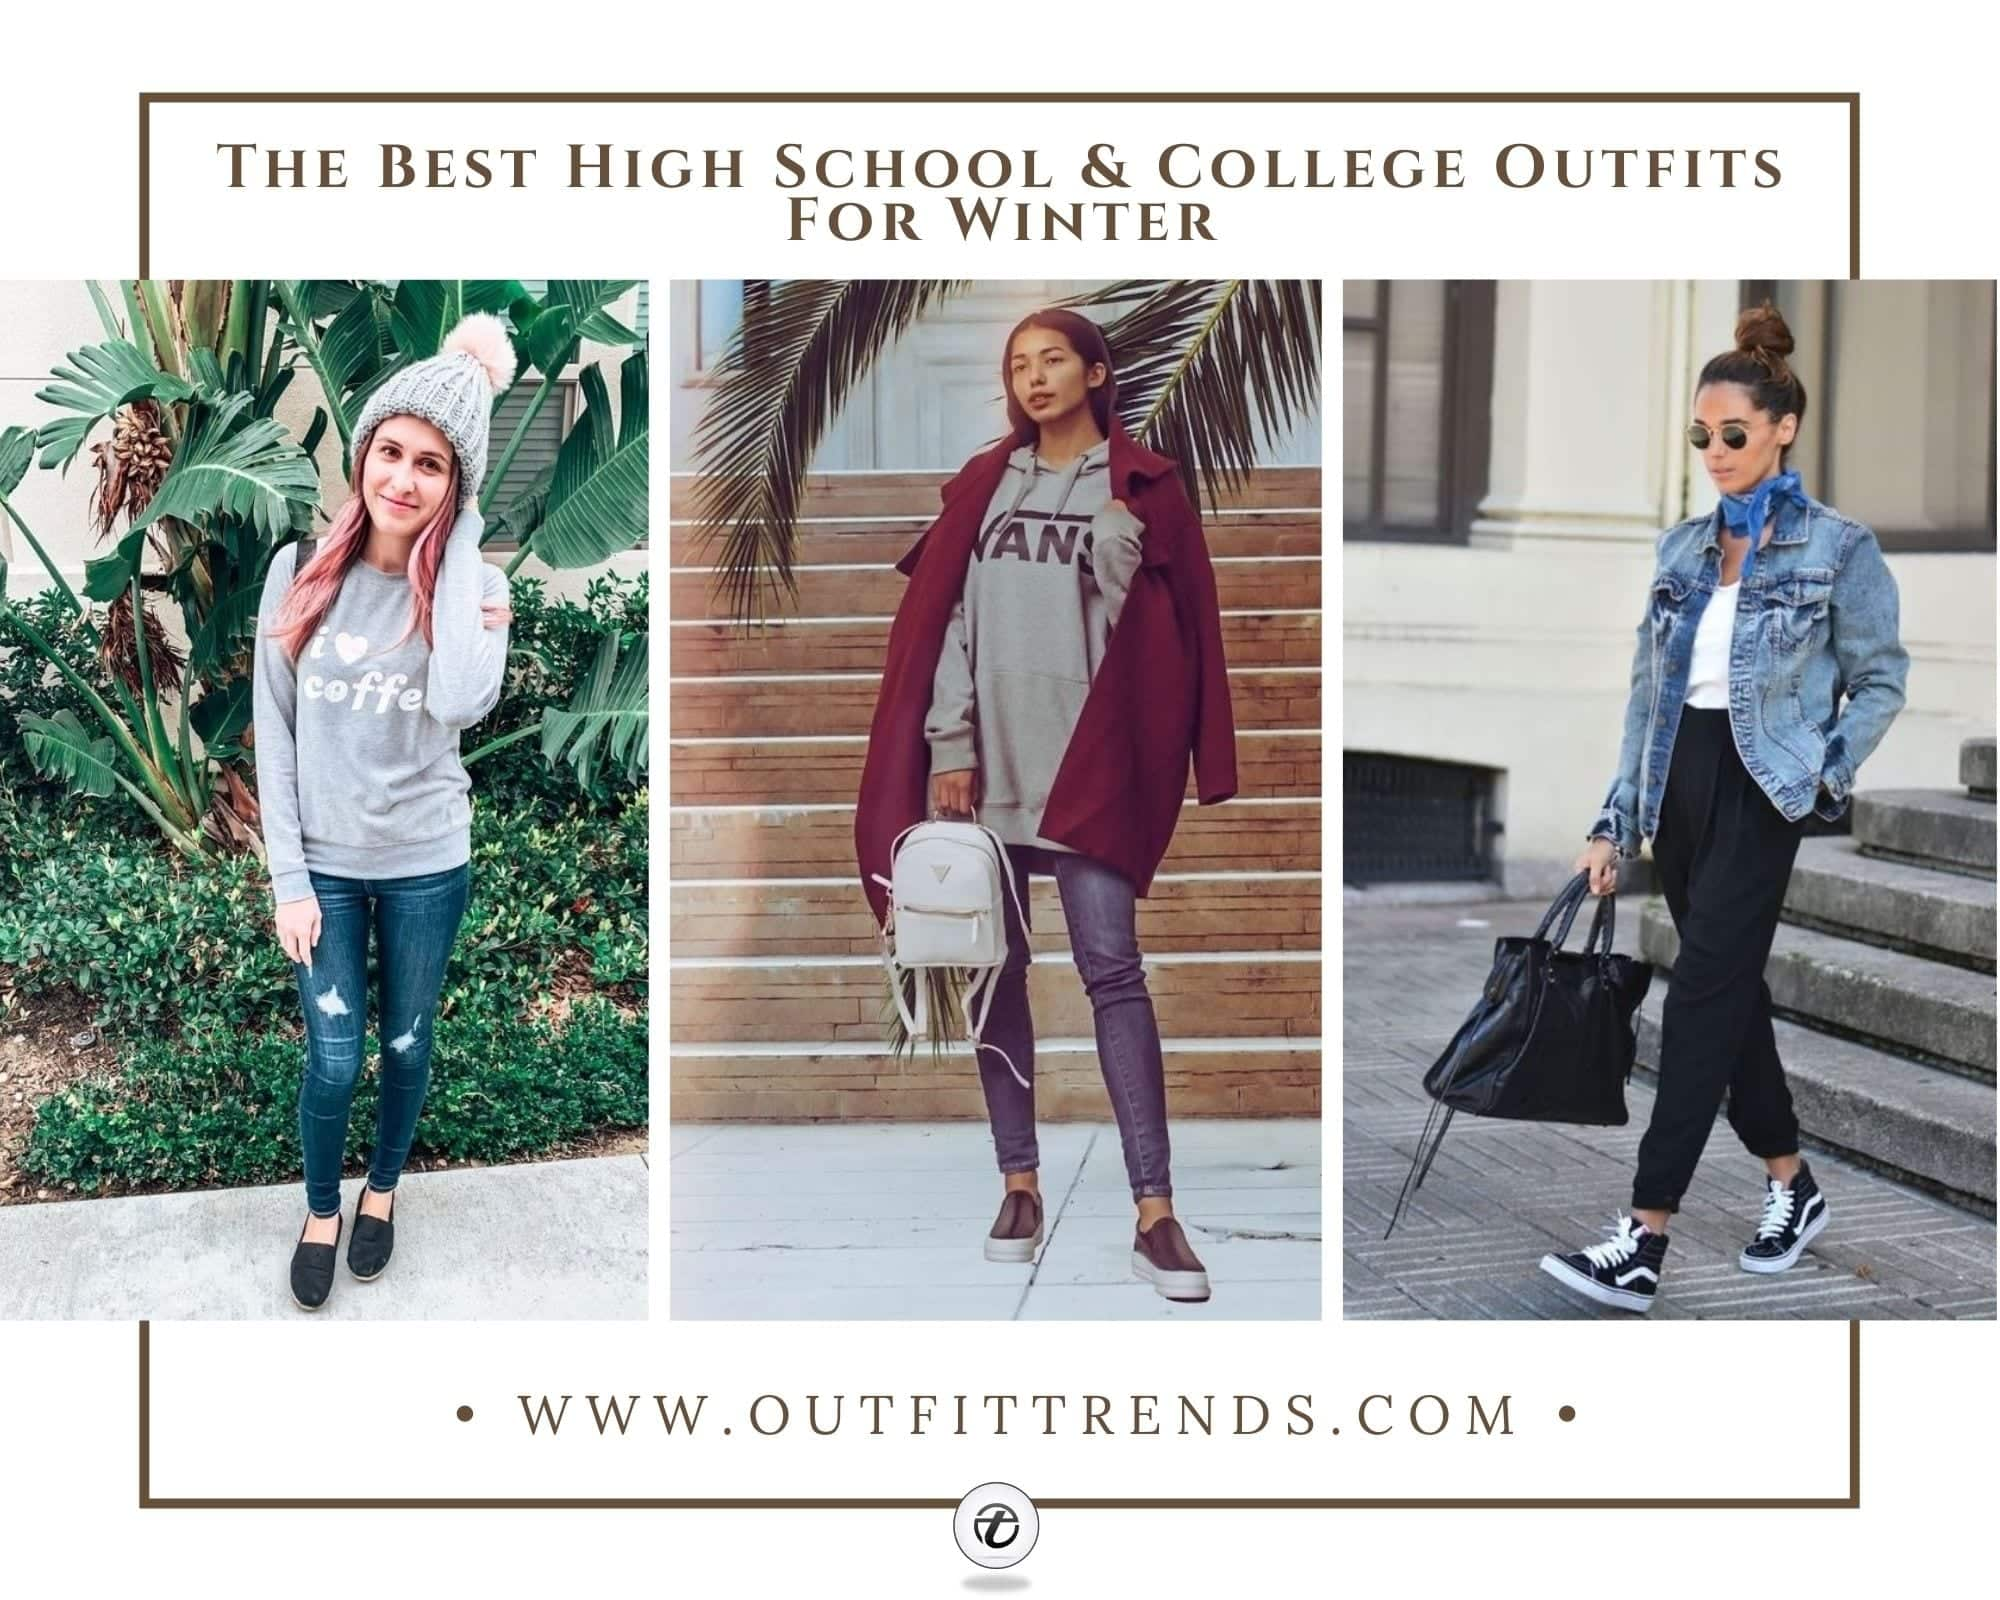 25 Cutest Winter Outfits For College & High School Girls